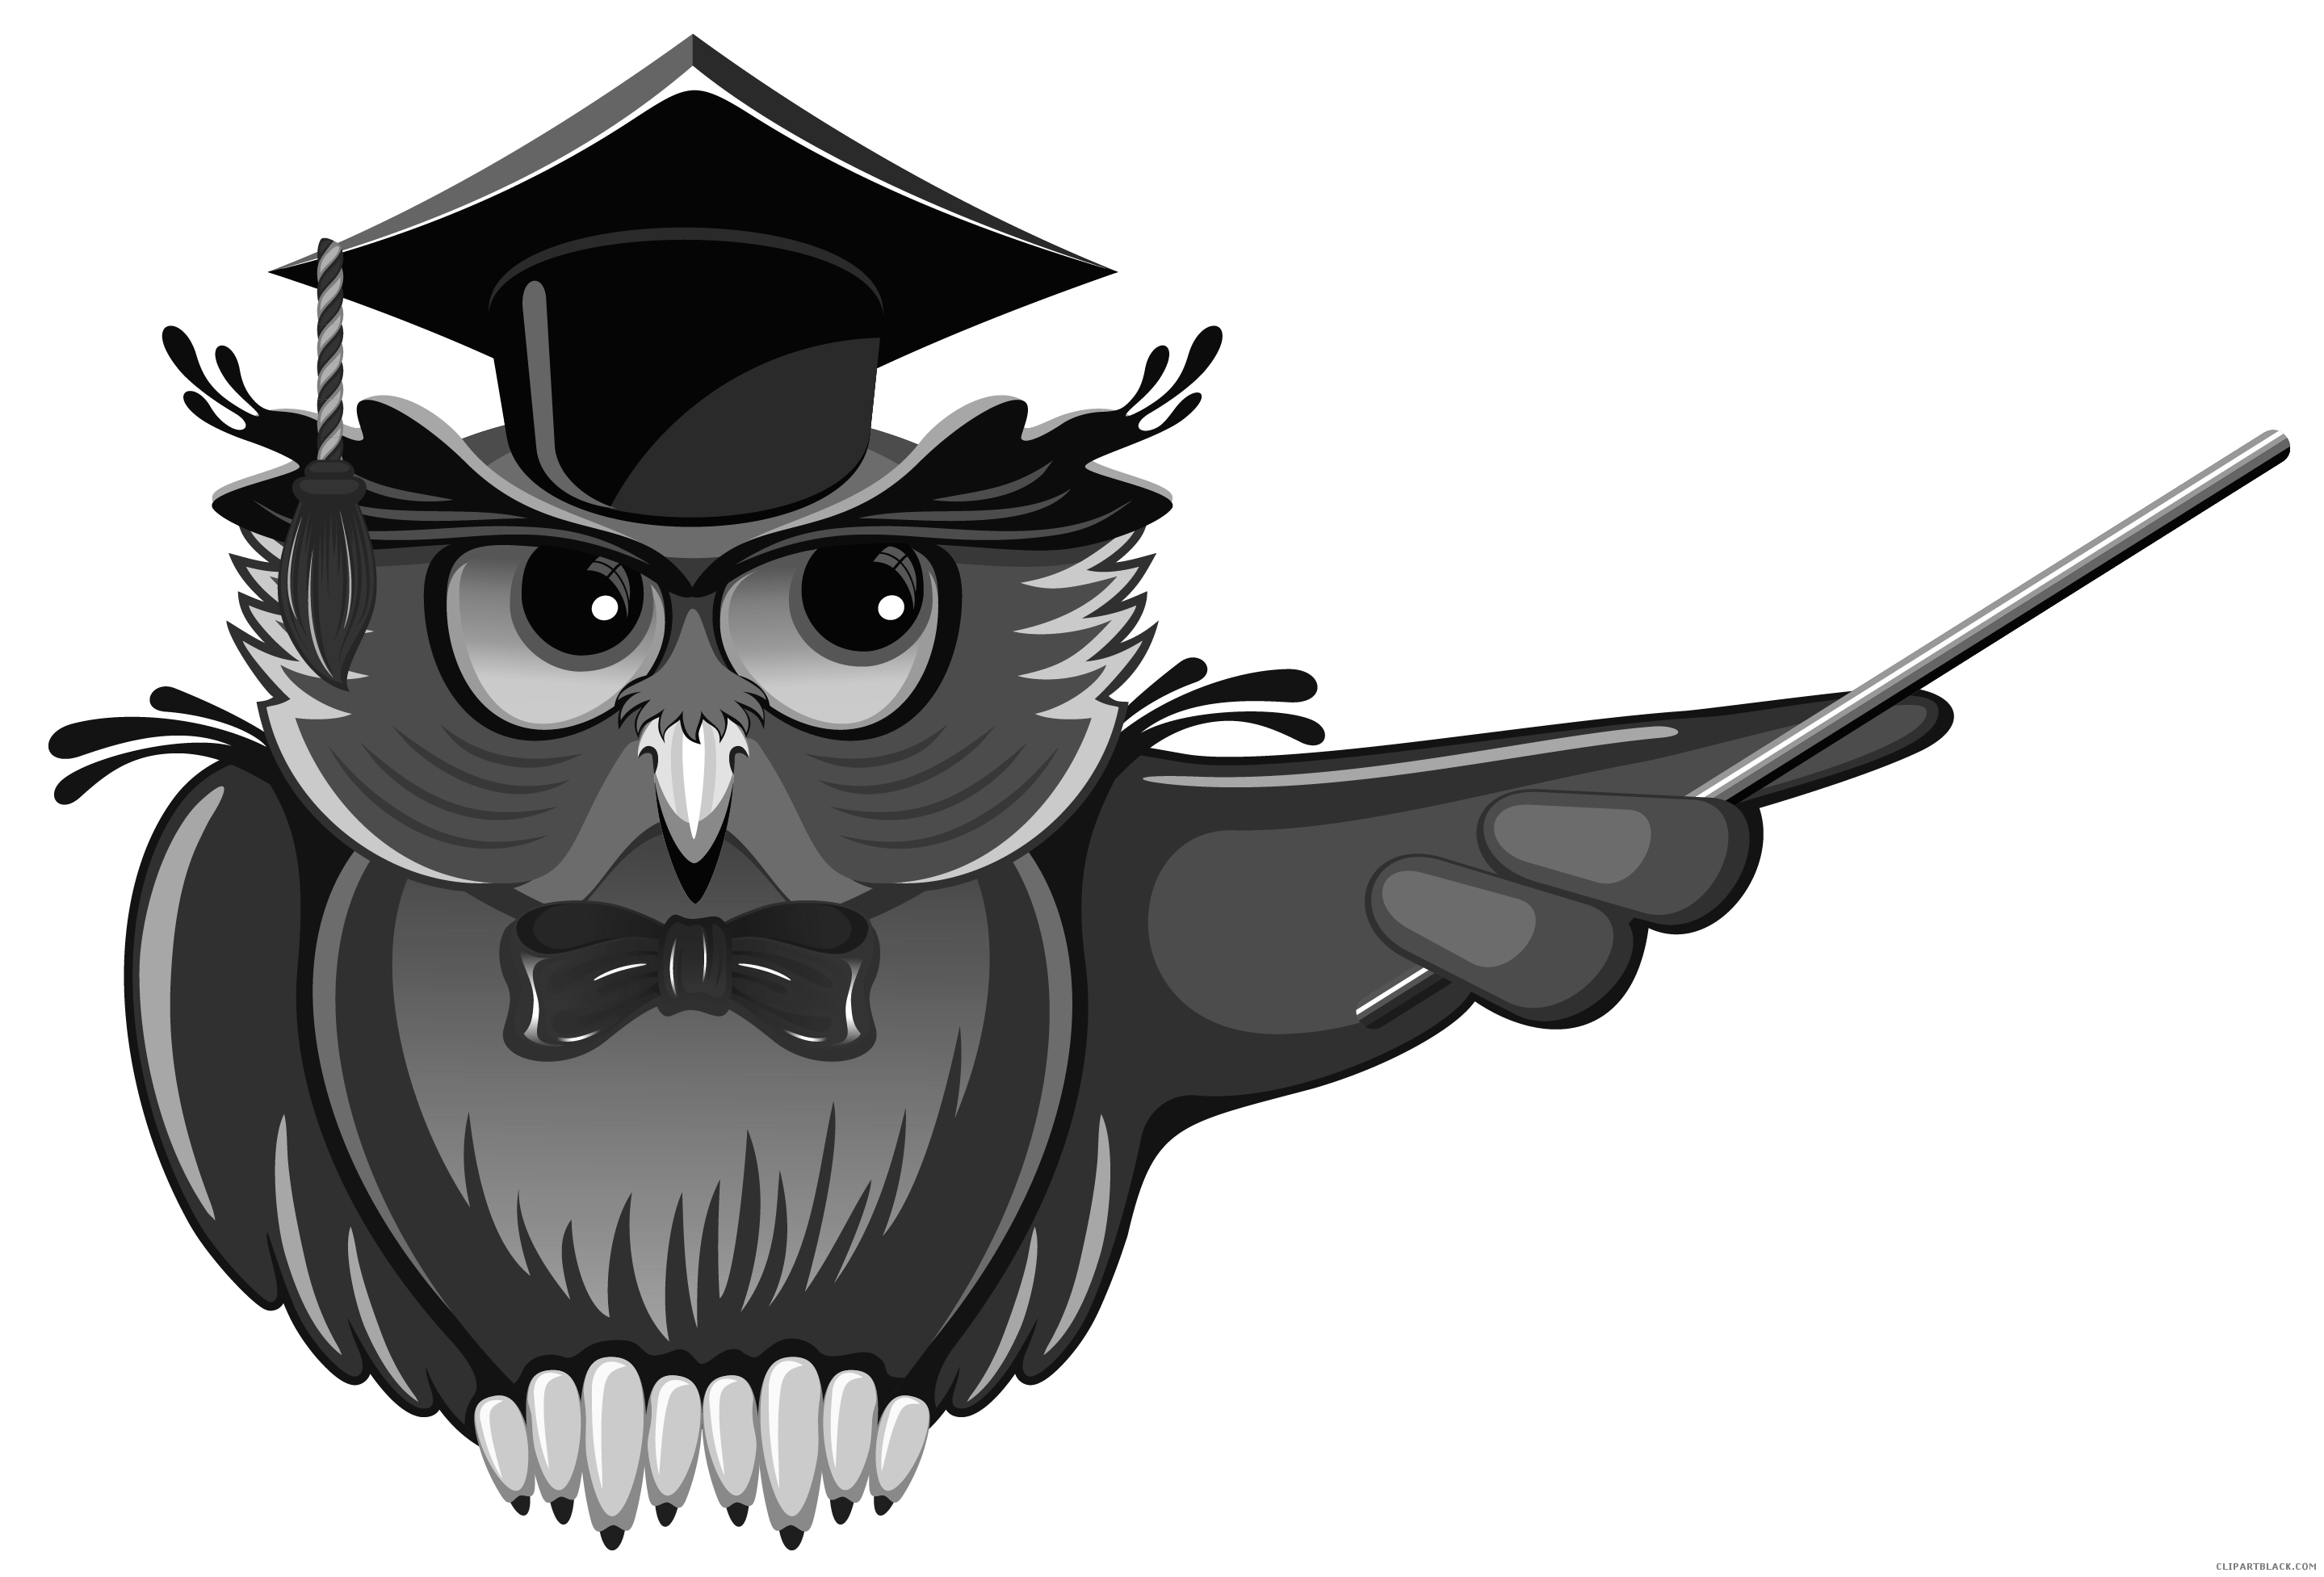 School owl clipart black and white image School Owl Clipart - ClipartBlack.com image